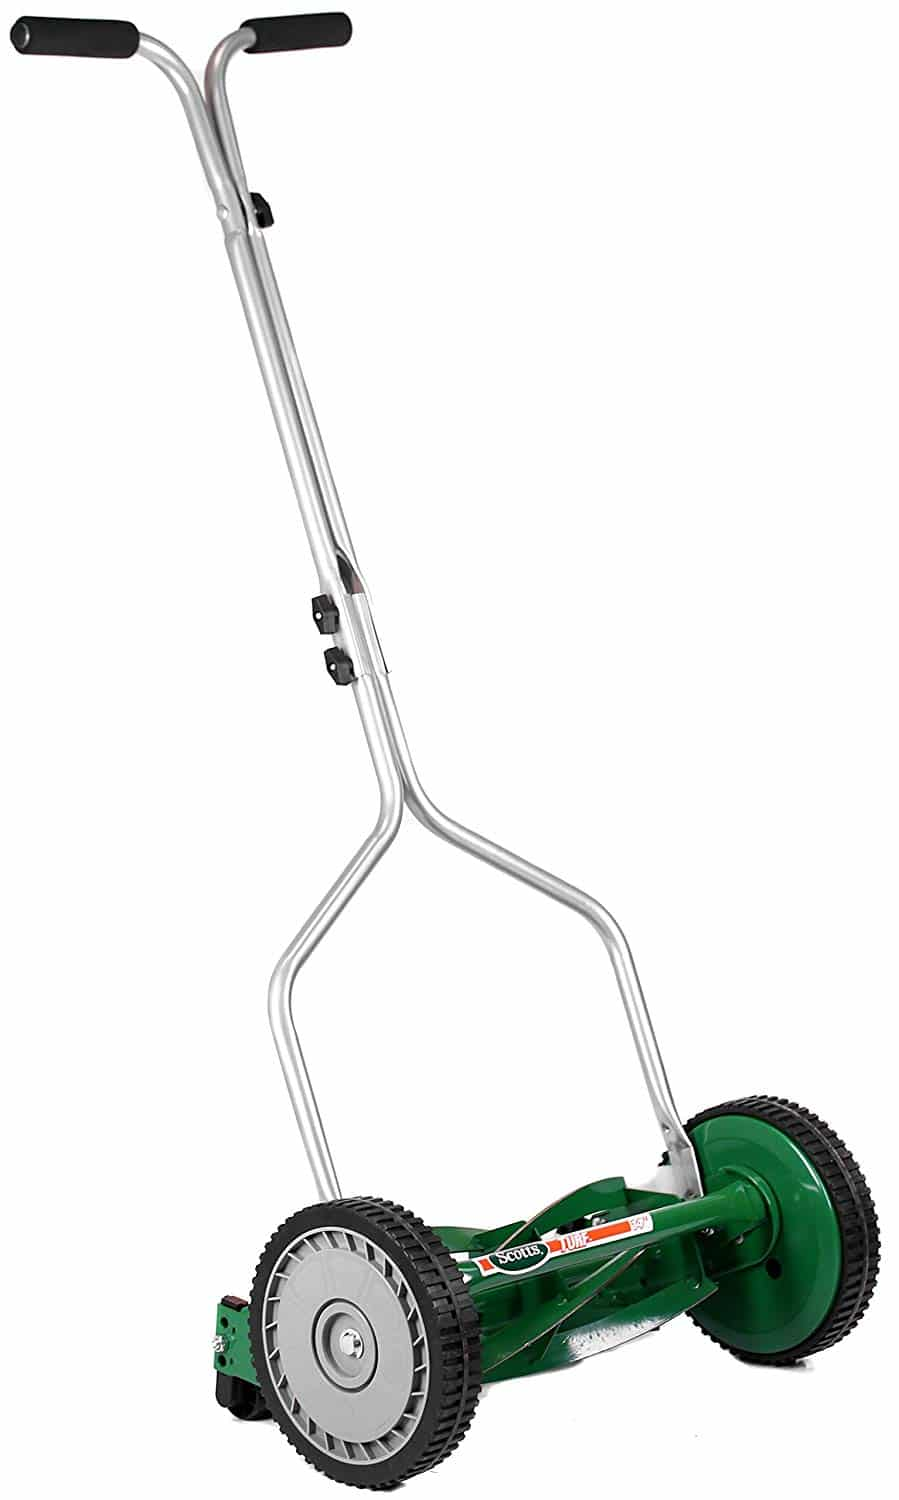 Scotts Outdoor Power Tools 5-Blade Push Reel Lawn Mower